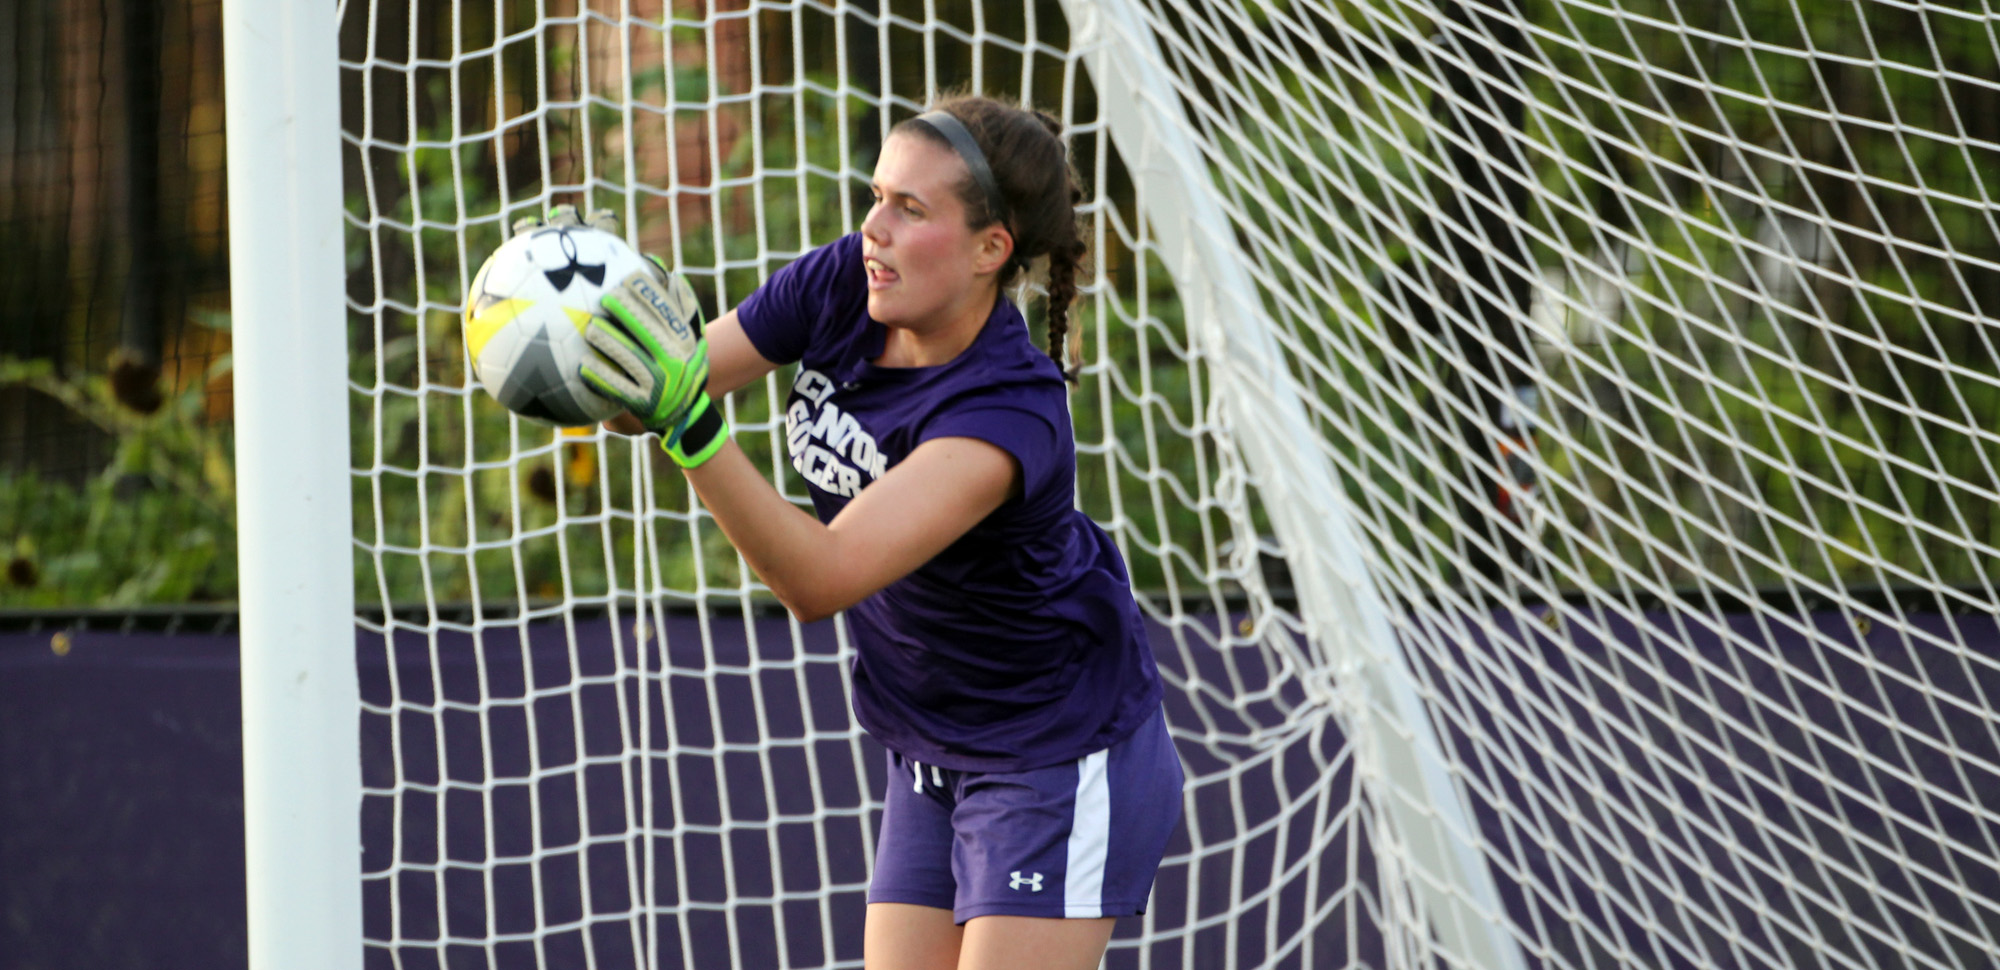 Senior goalkeeper Colleen Berry posted her sixth shutout of the season on Saturday.